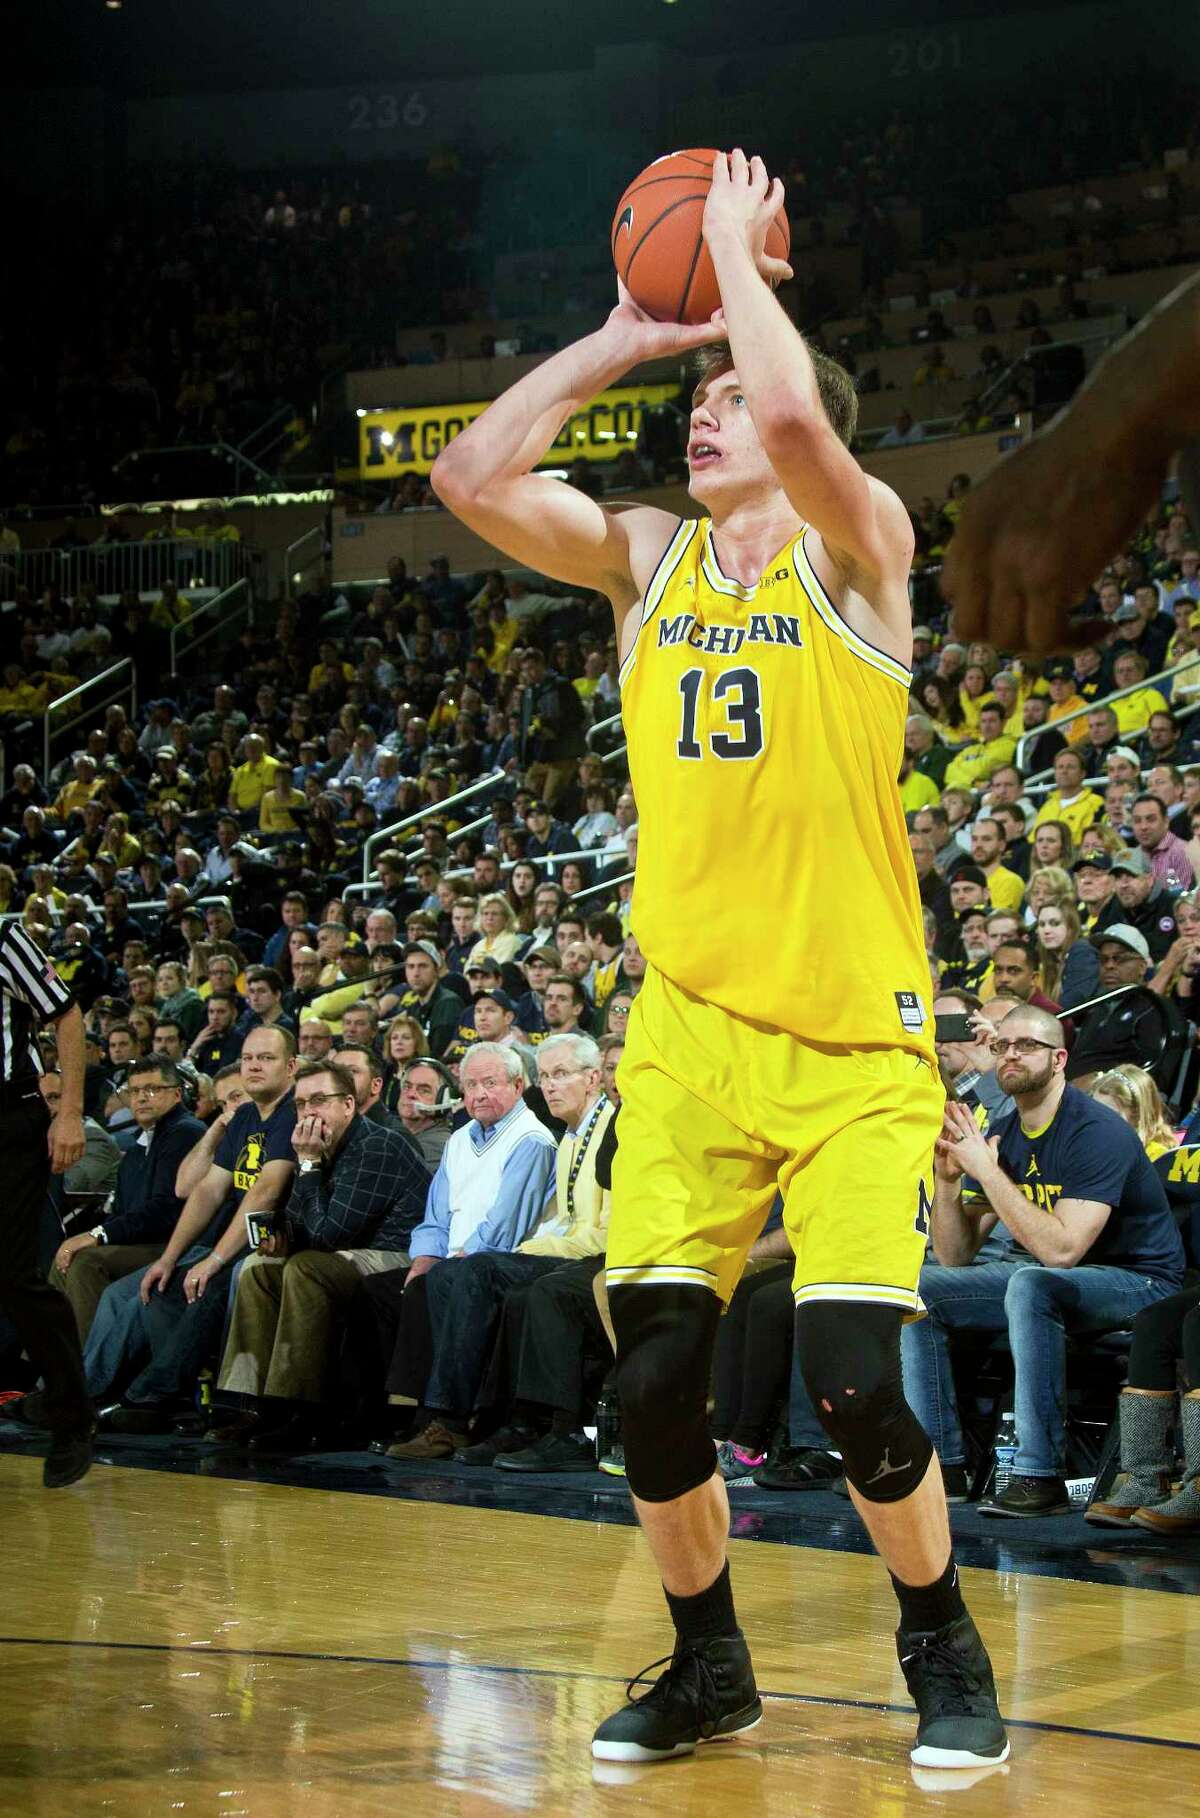 FILE - In this Feb. 7, 2017, file photo, Michigan forward Moritz Wagner (13), of Germany, attempts a three point basket in the second half of an NCAA college basketball game against Michigan State, in Ann Arbor, Mich. The Wolverines have made a school record 340 3s this season, their top six scorers are all capable of making shots from beyond the arc and even 6-foot-11 Moe Wagner and 6-10 D.J. Wilson can make long-range jumpers. (AP Photo/Tony Ding, File) ORG XMIT: NY156